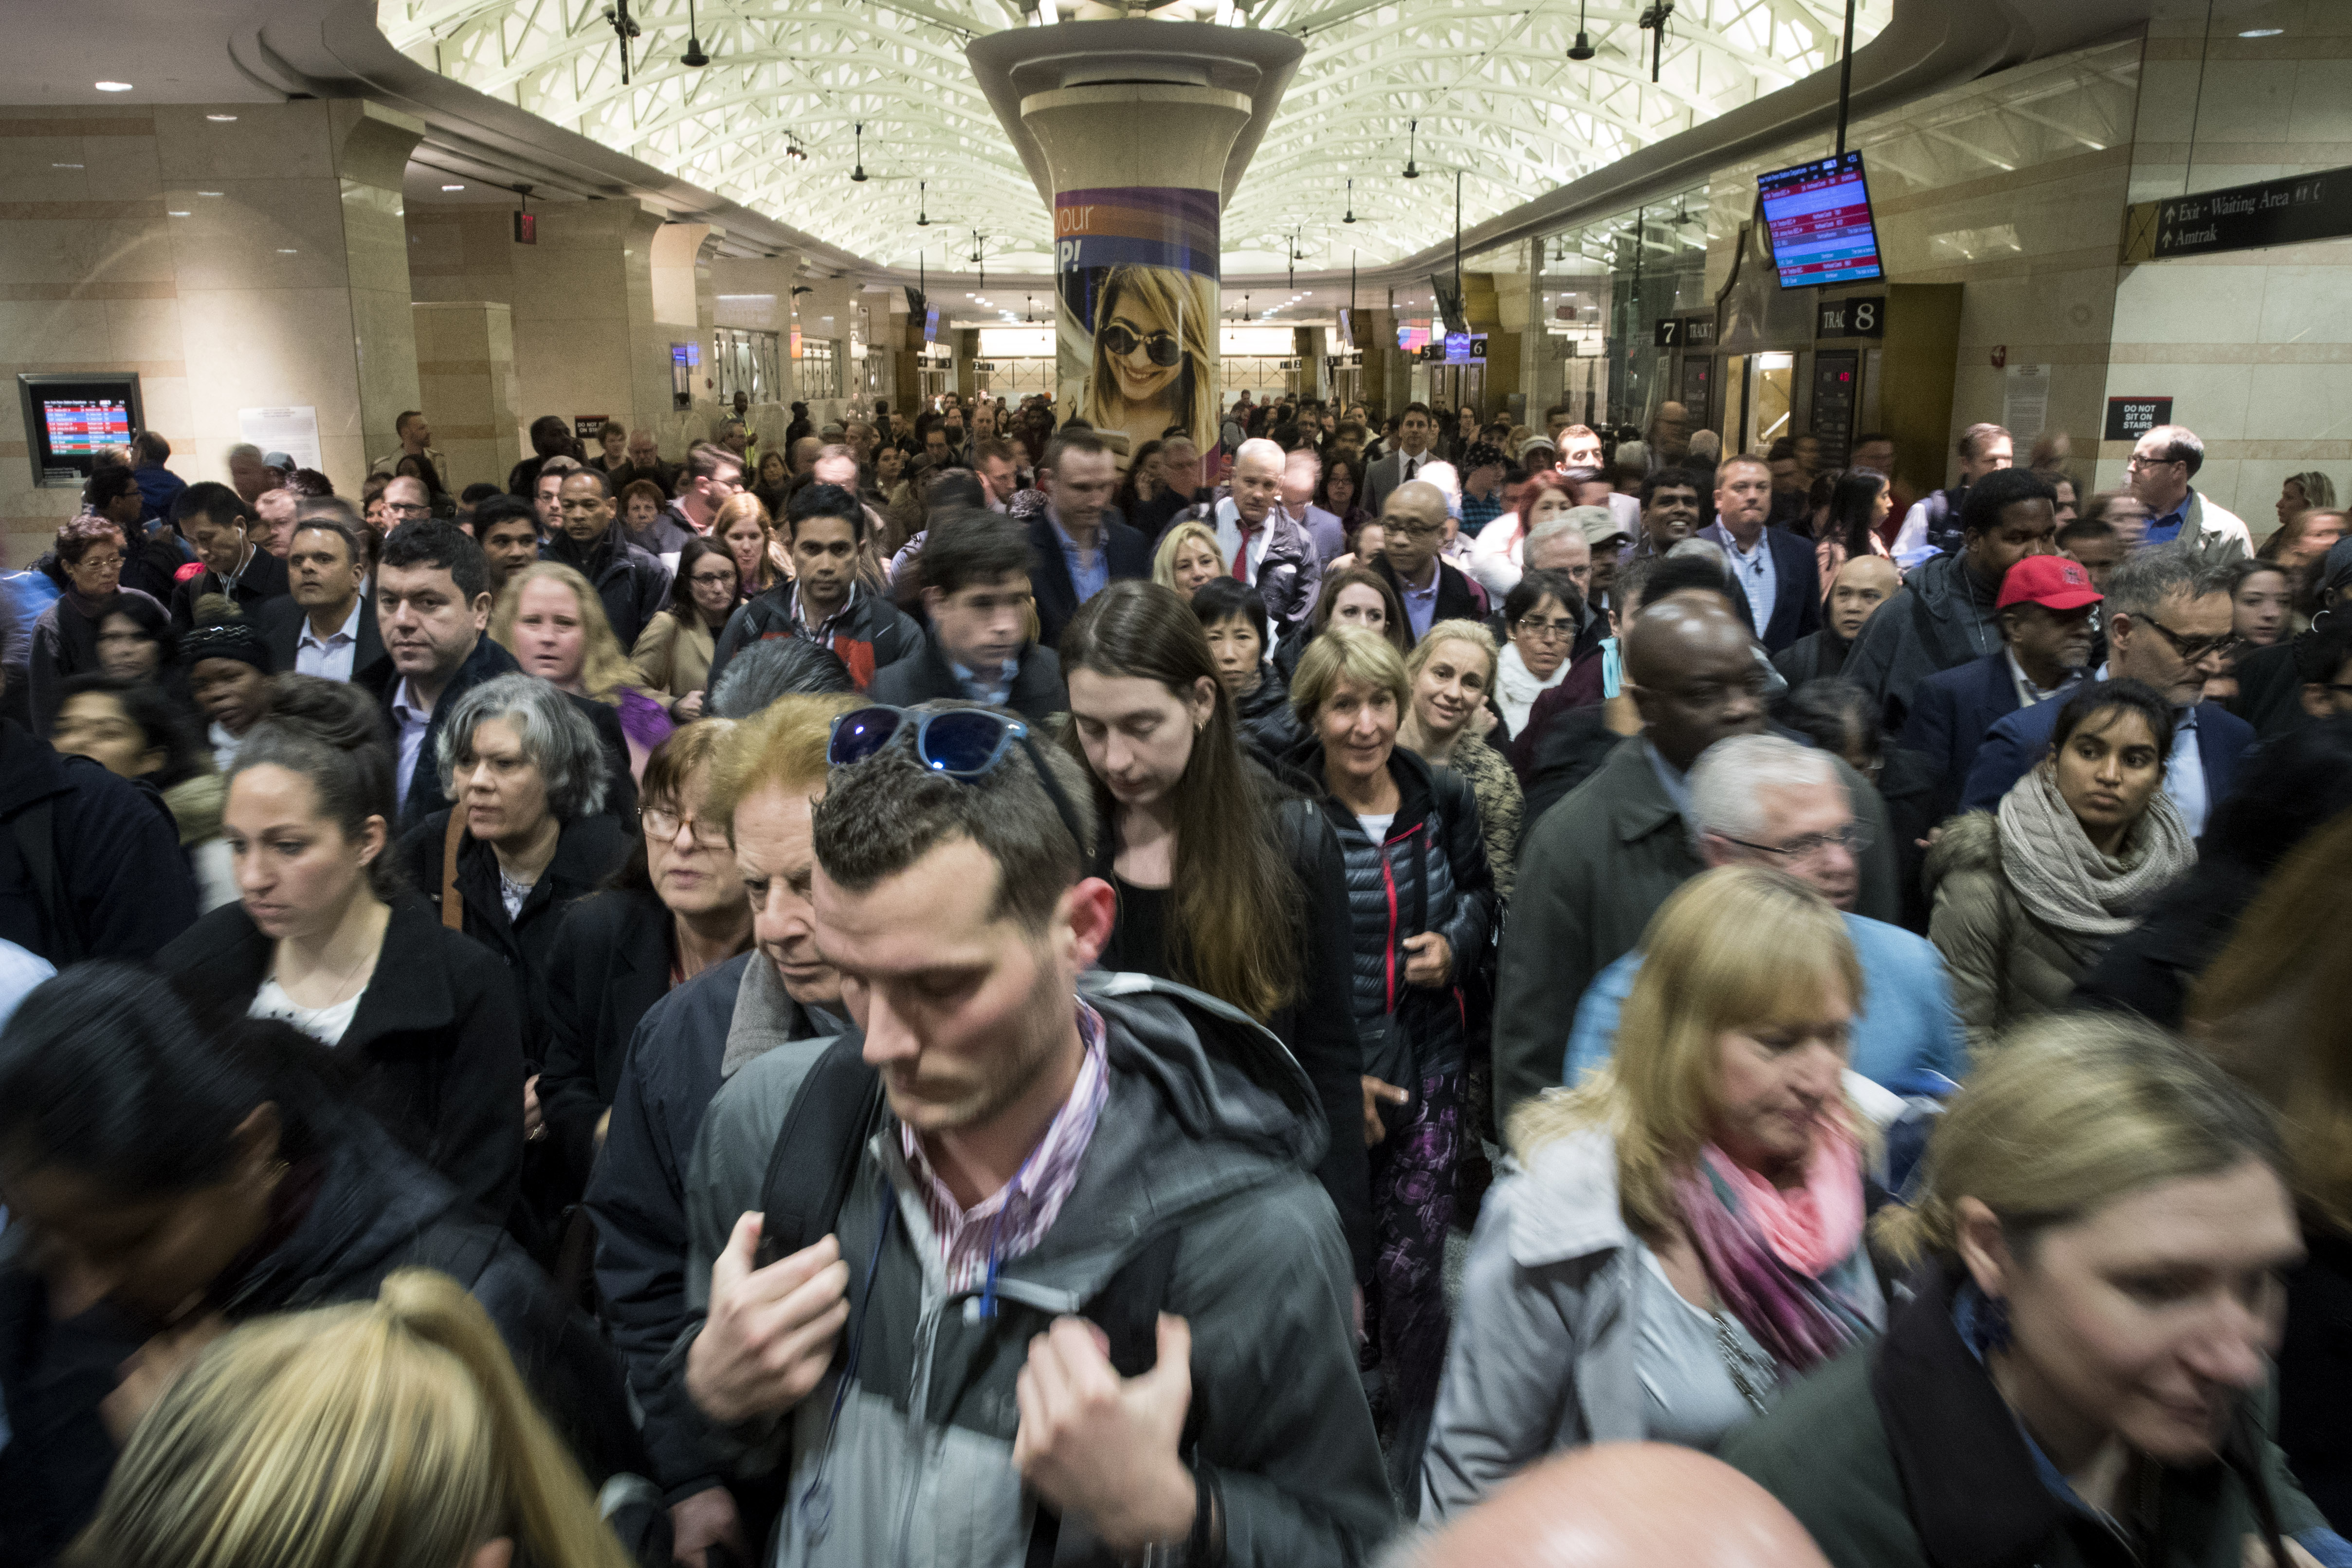 Mass Transit Disruptions Create Chaos For NYC Commuters